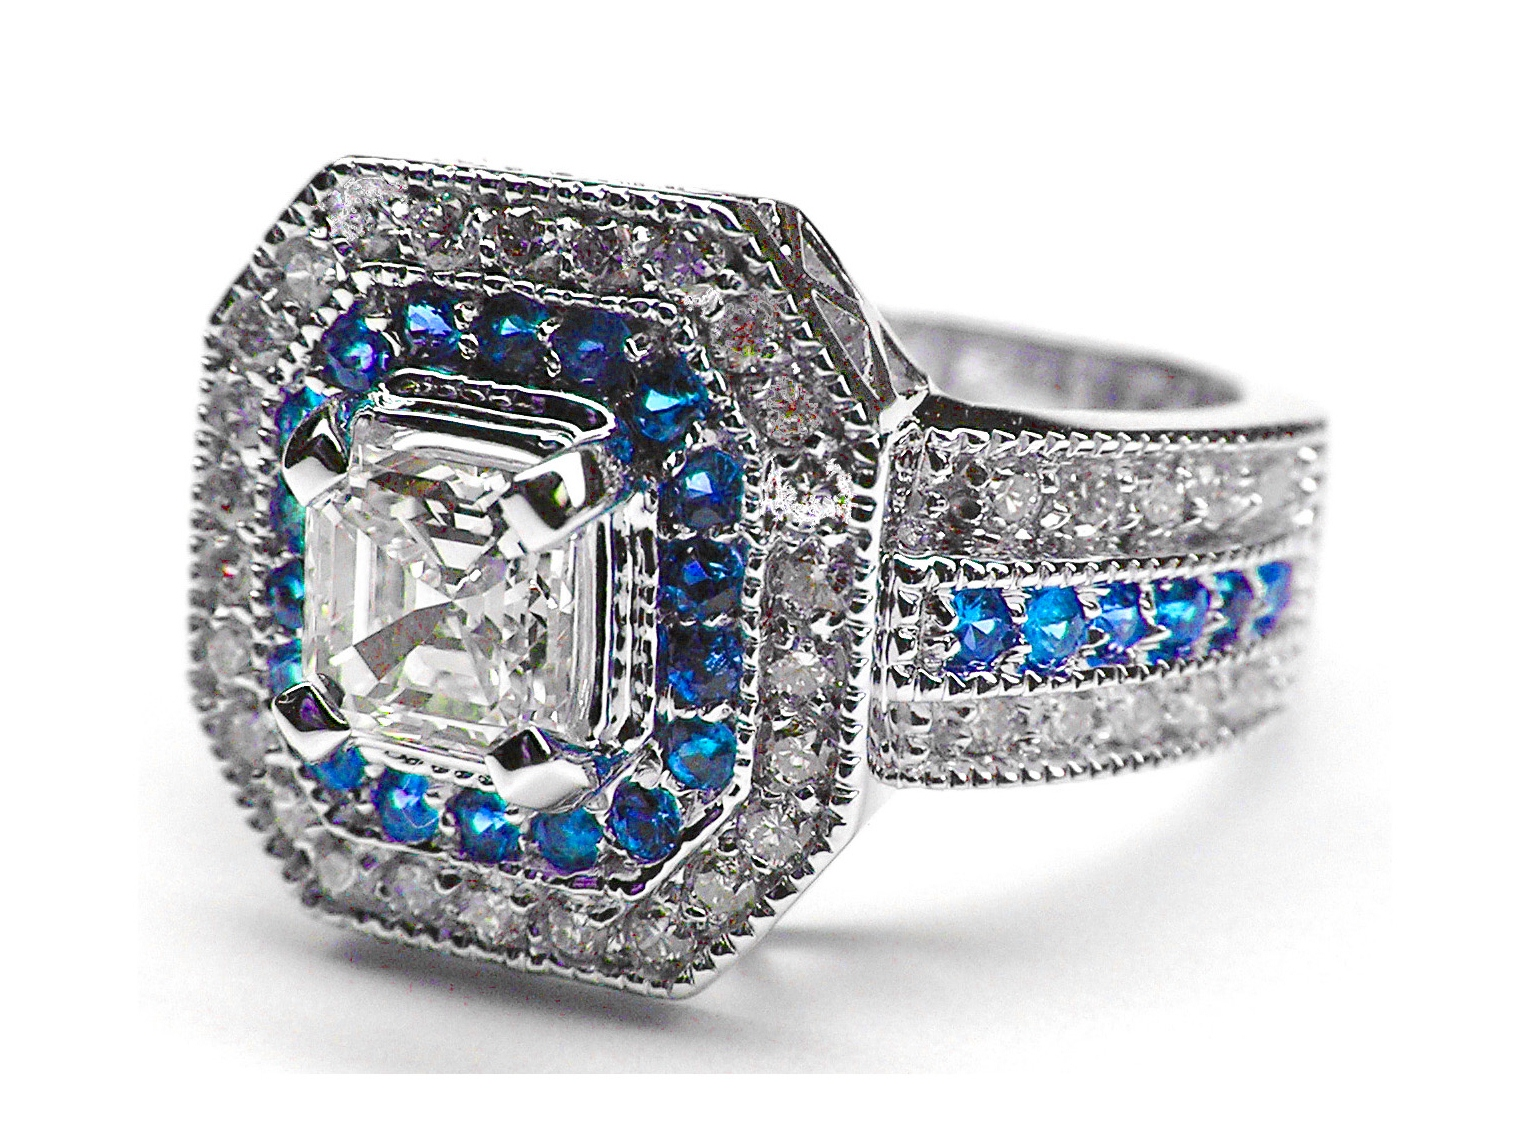 grown zoom tb in cut betterthandiamond news com avarra lab asscher blue kashmir latest sapphire